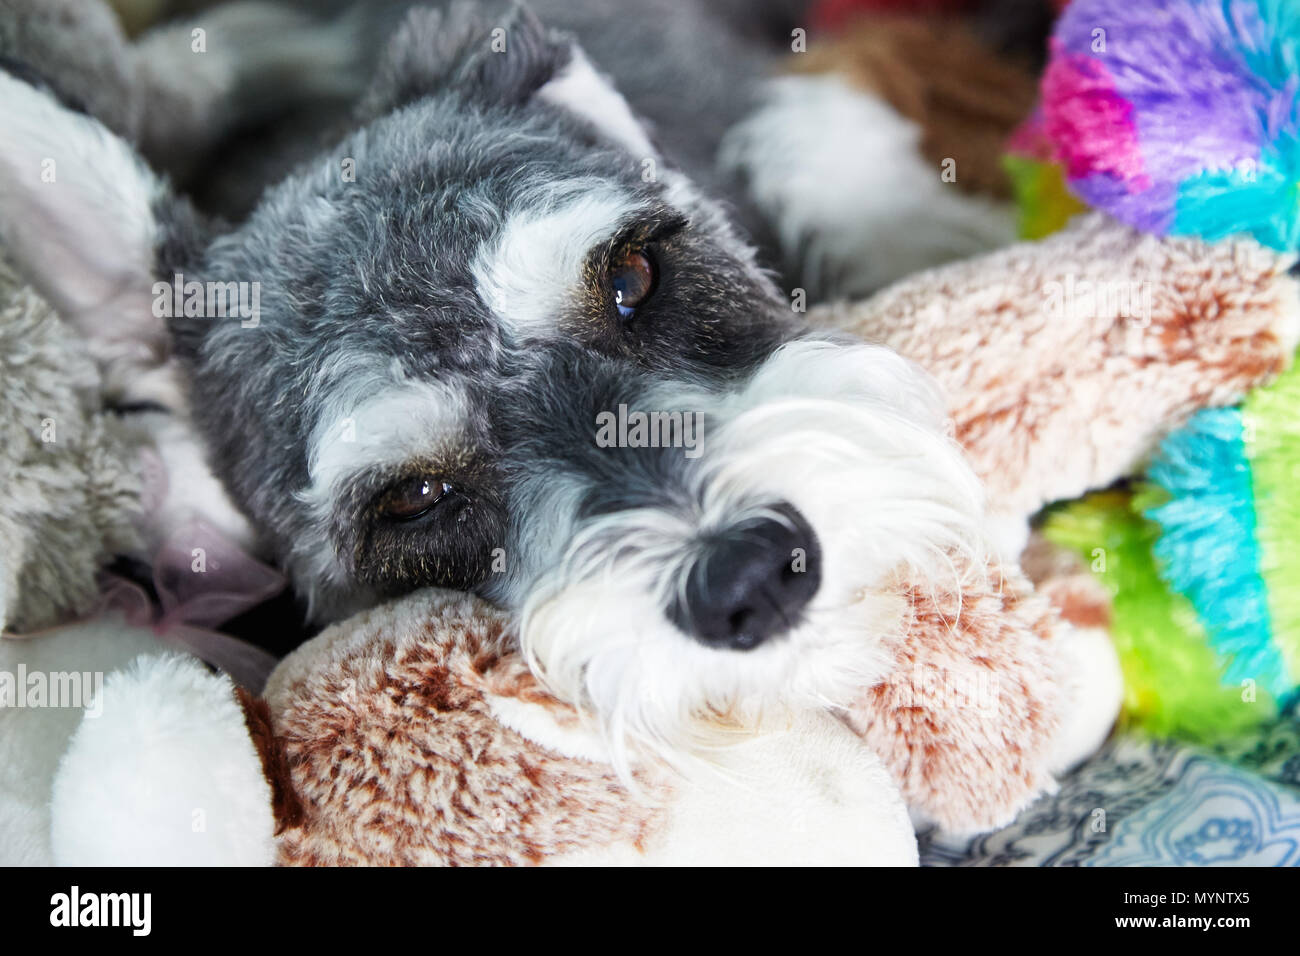 Dog Laying On Bed With Stuffed Animals Stock Photo 189179933 Alamy